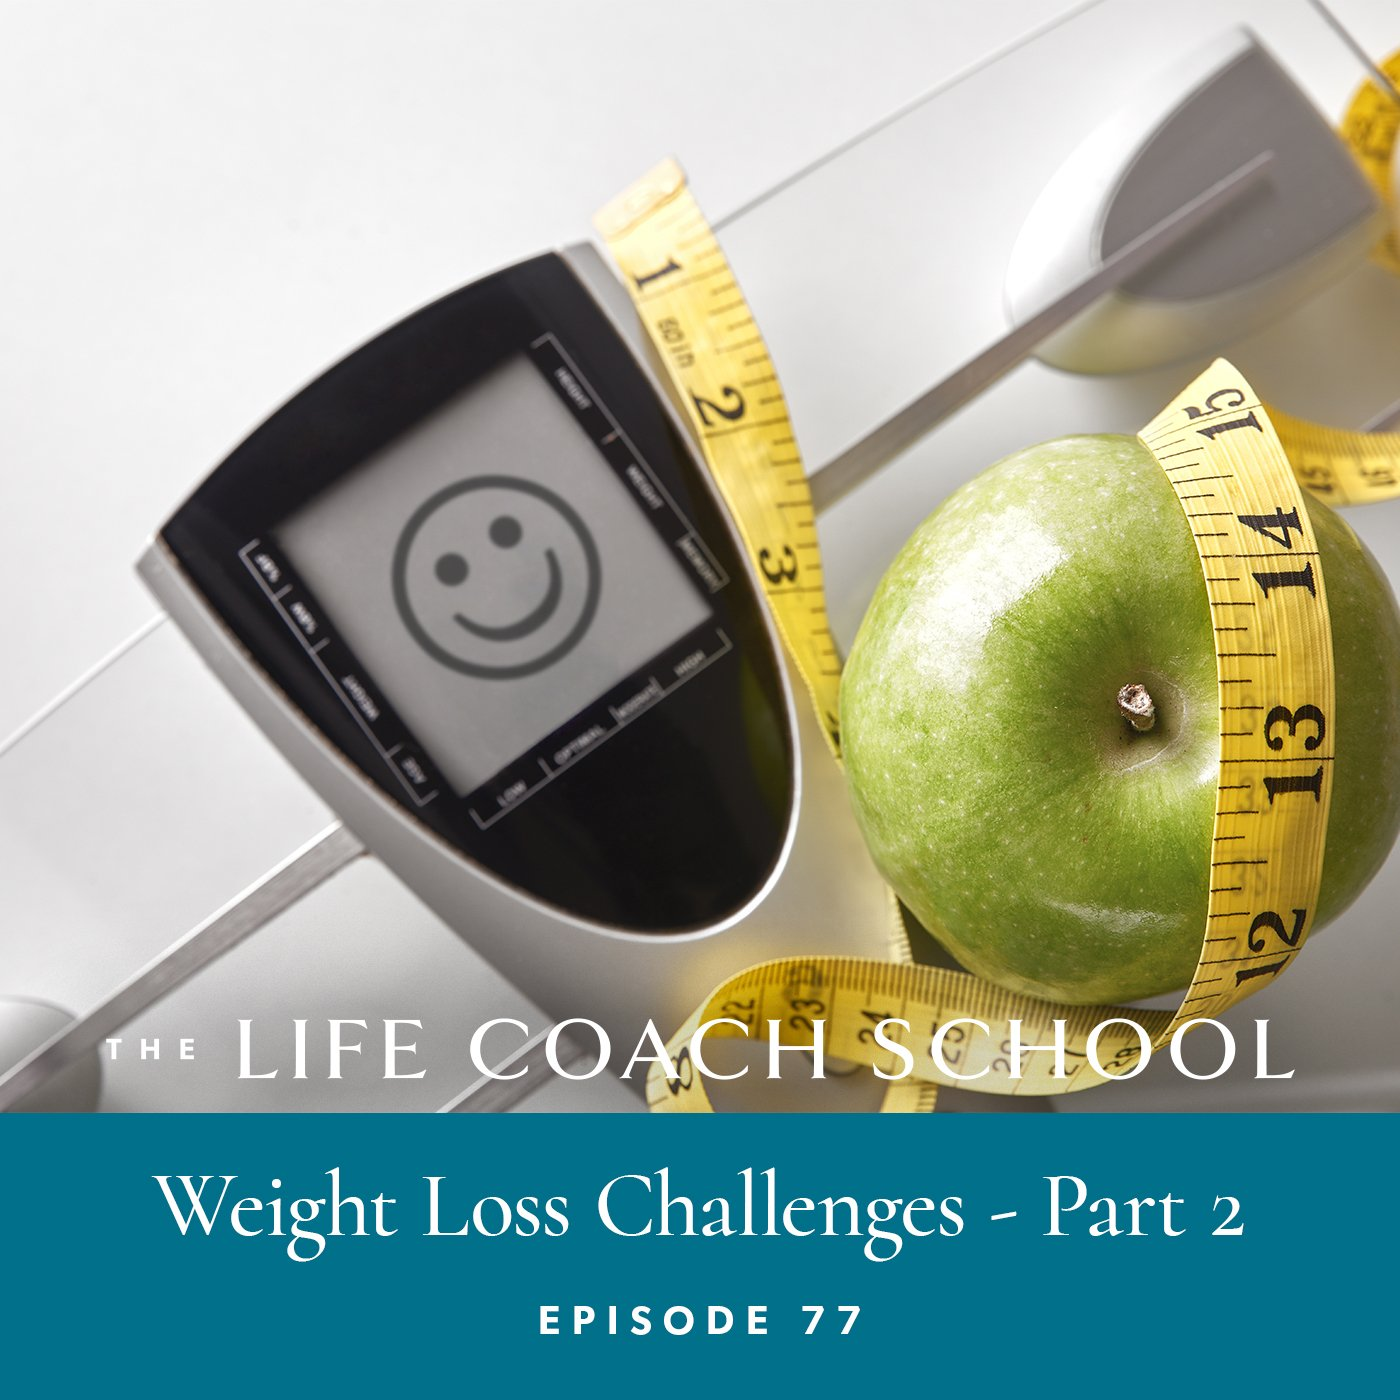 The Life Coach School Podcast with Brooke Castillo | Episode 76 | Weight Loss Challenges - Part 2